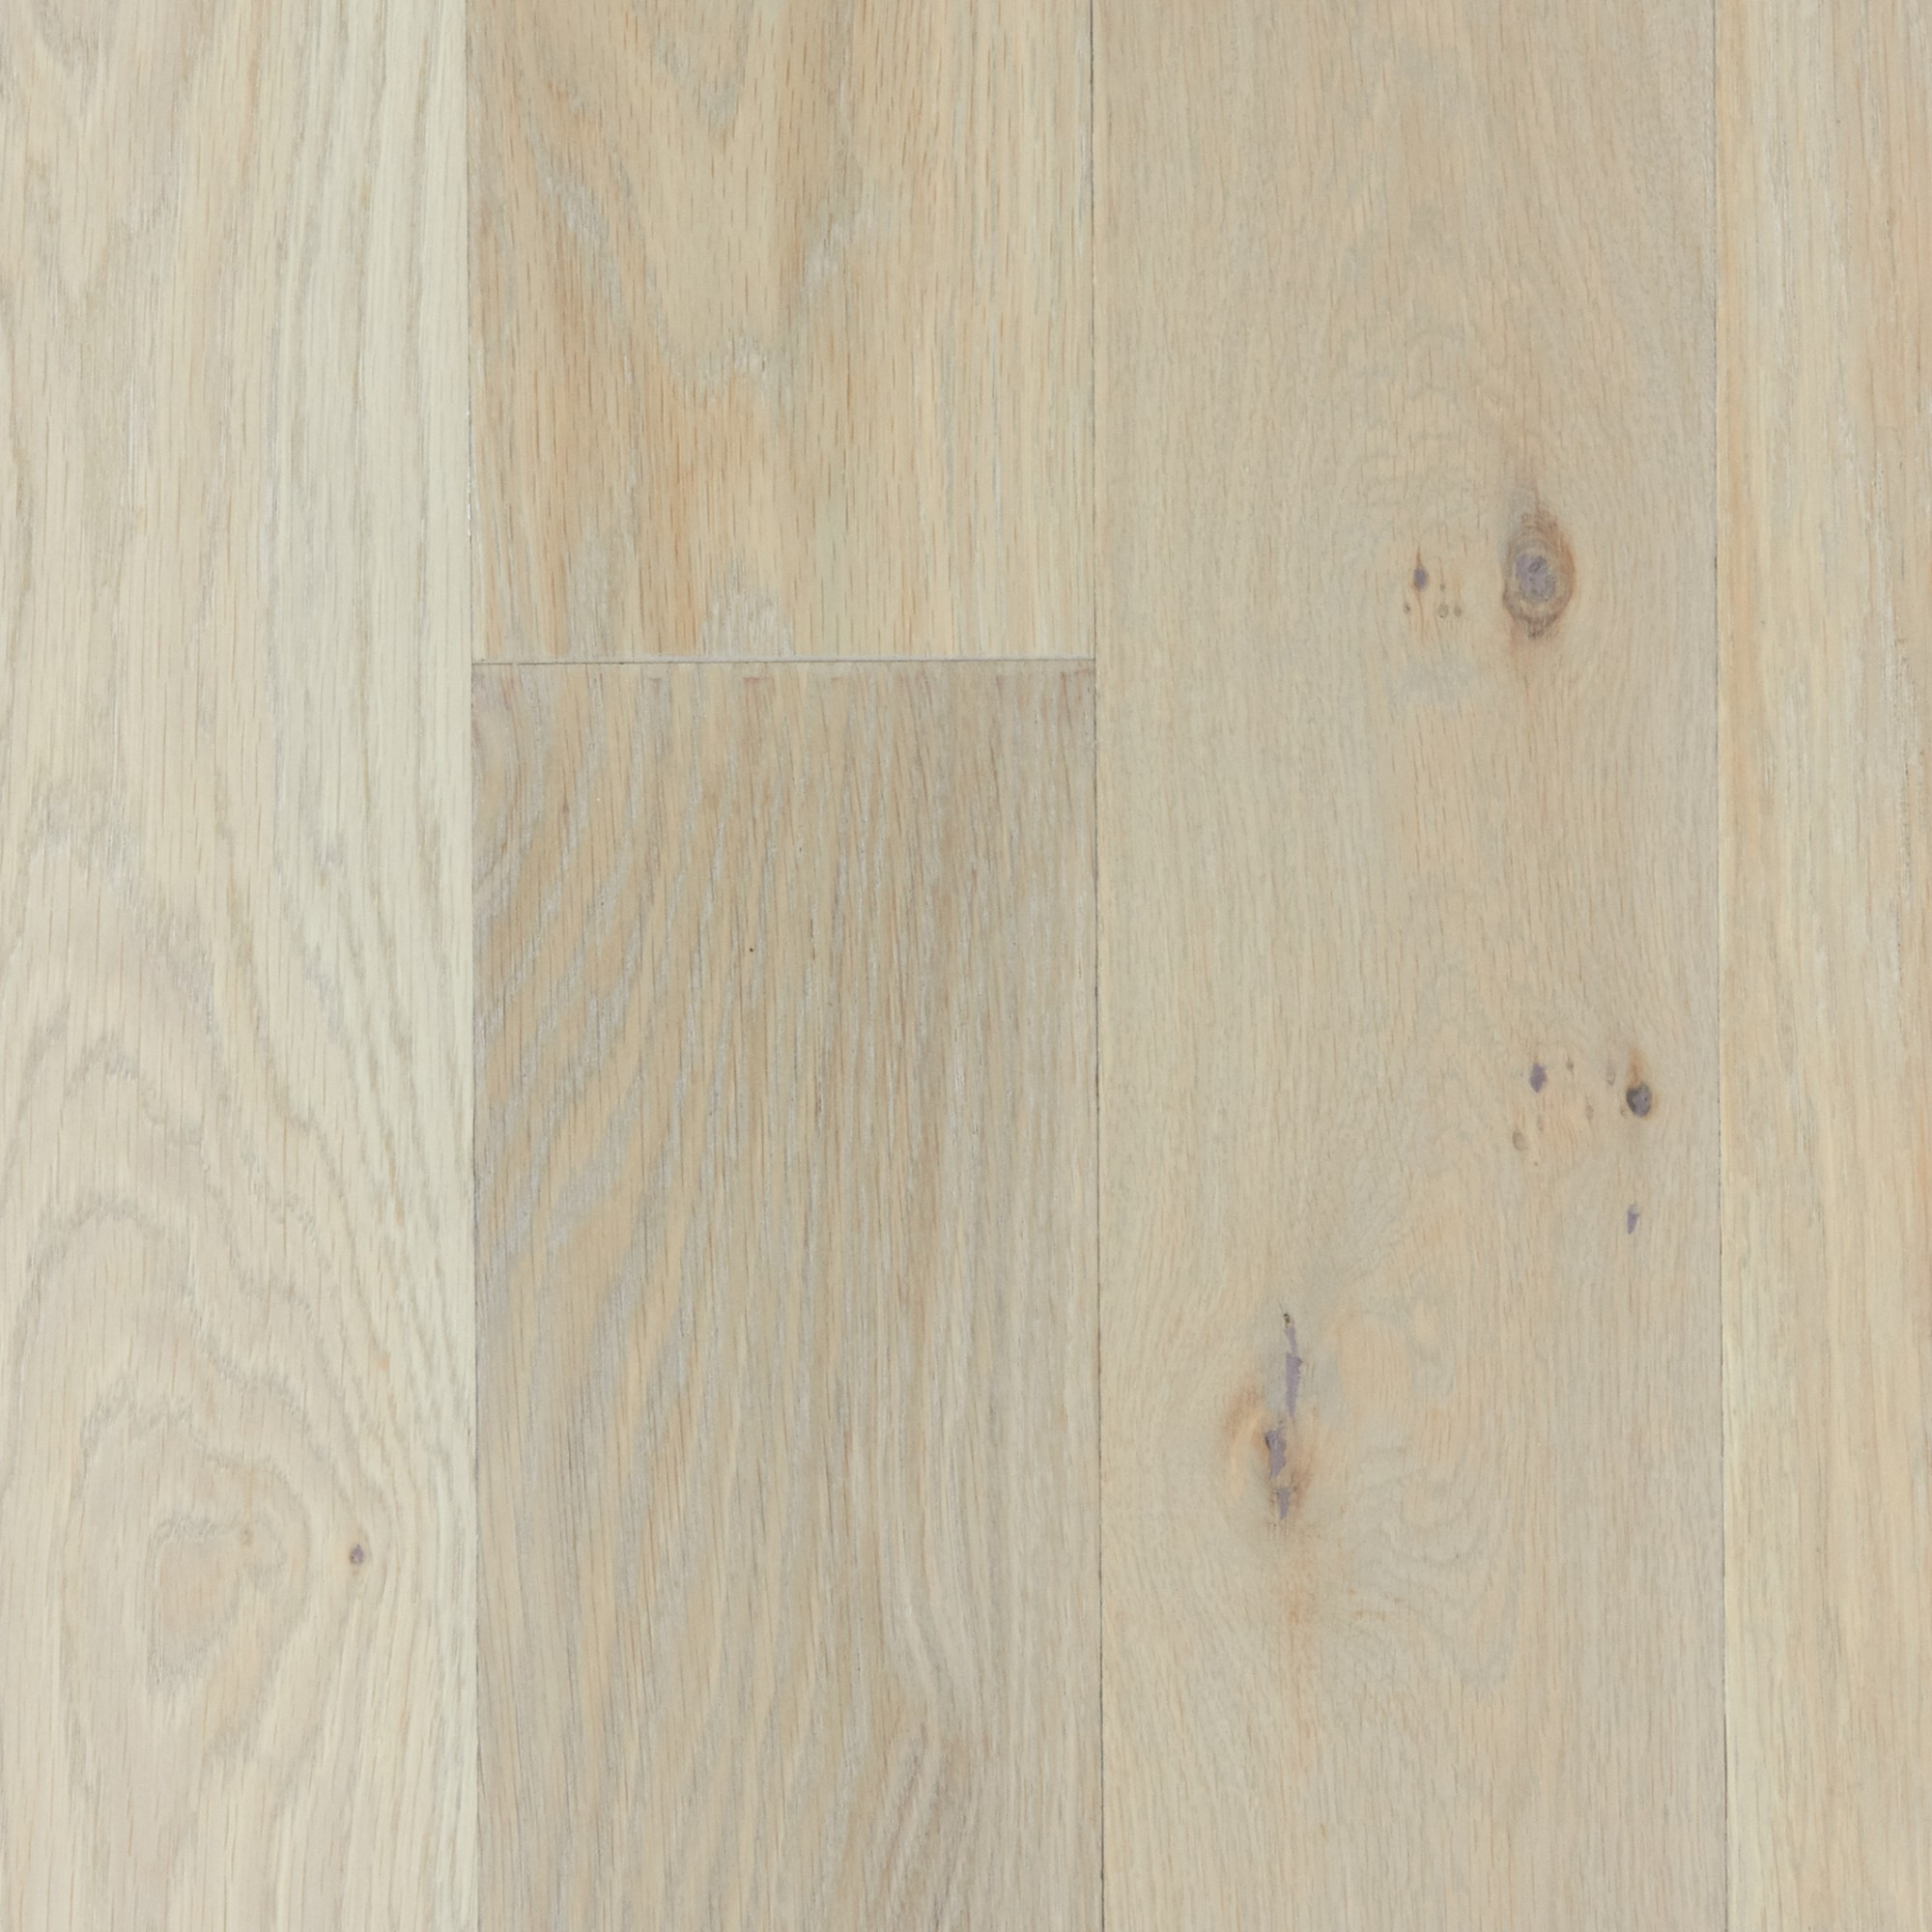 swatch oak image floors abbey flooring oiled brushed floor uv wood lifestyle natural factory main engineered hailes